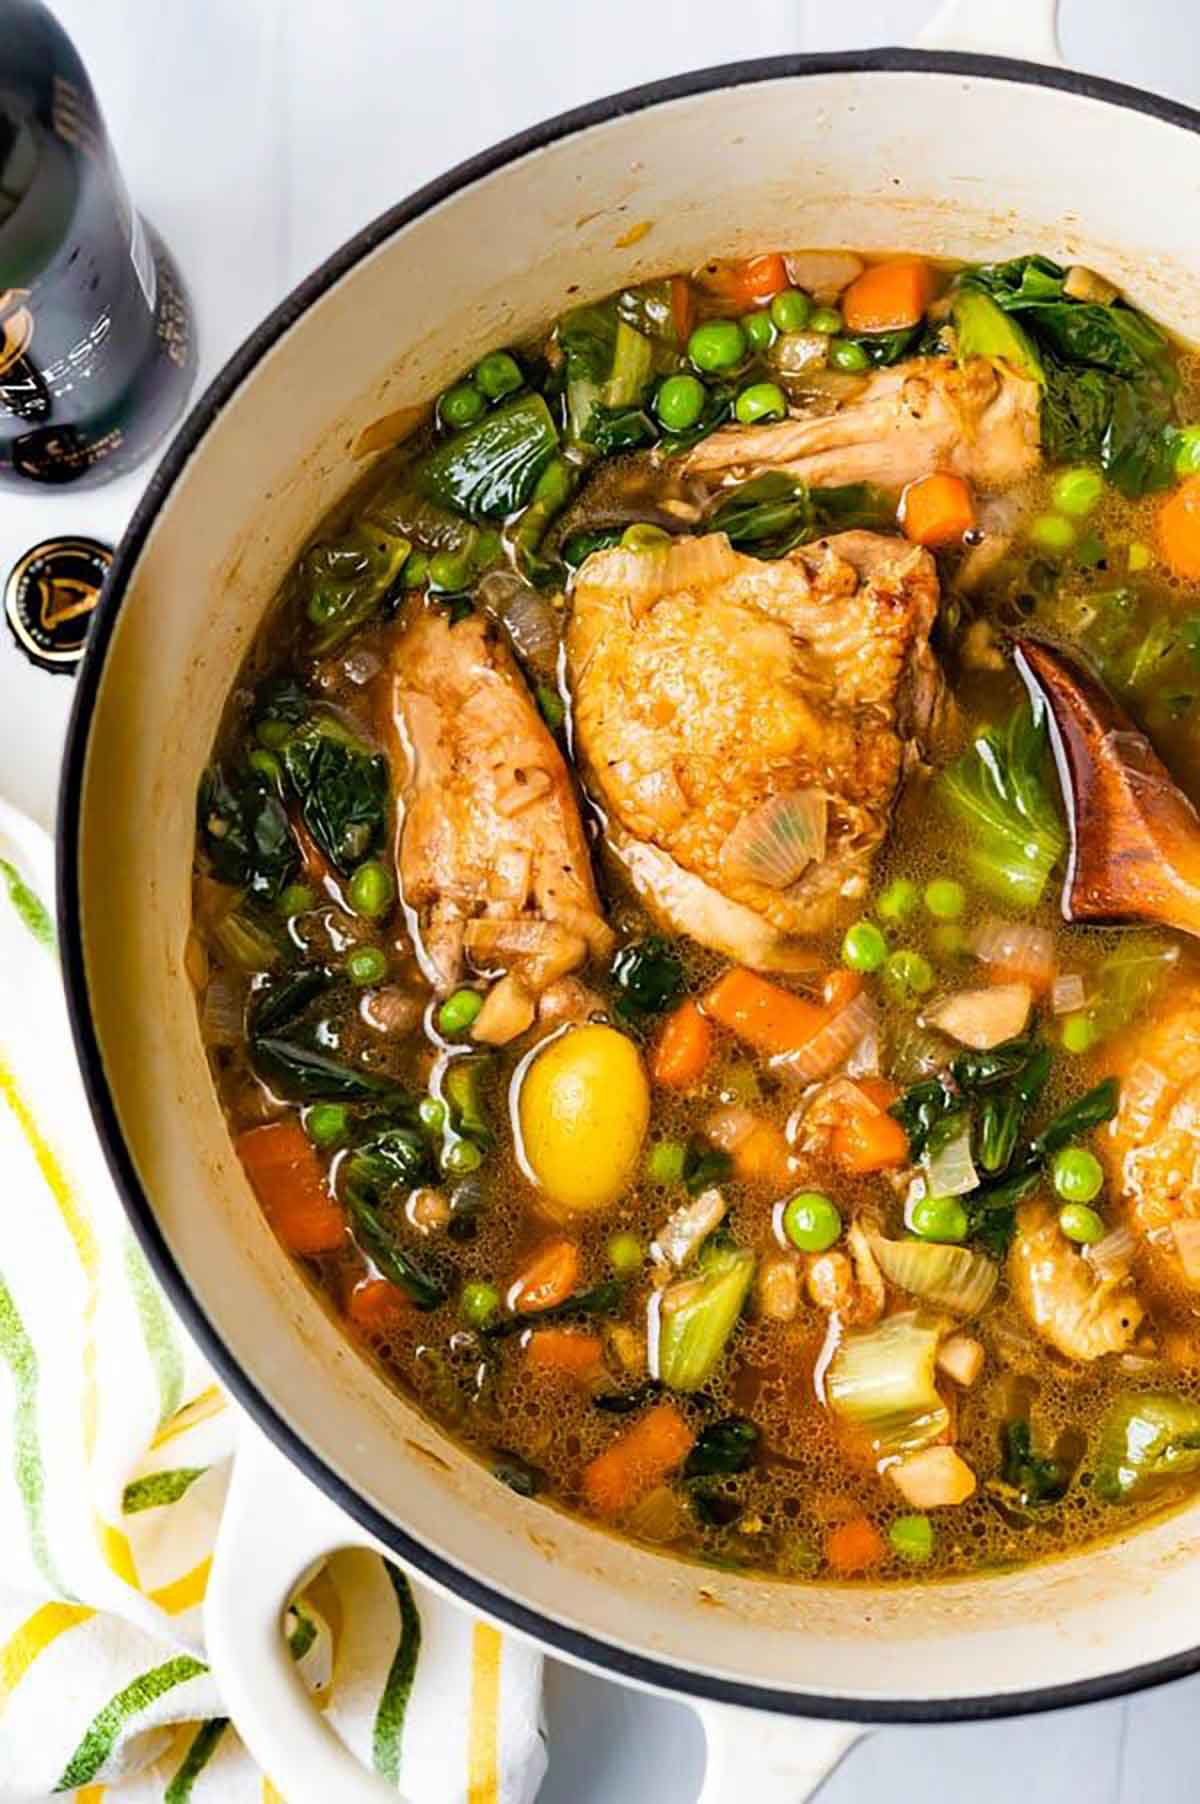 Stout chicken thighs with vegetables in a pot.